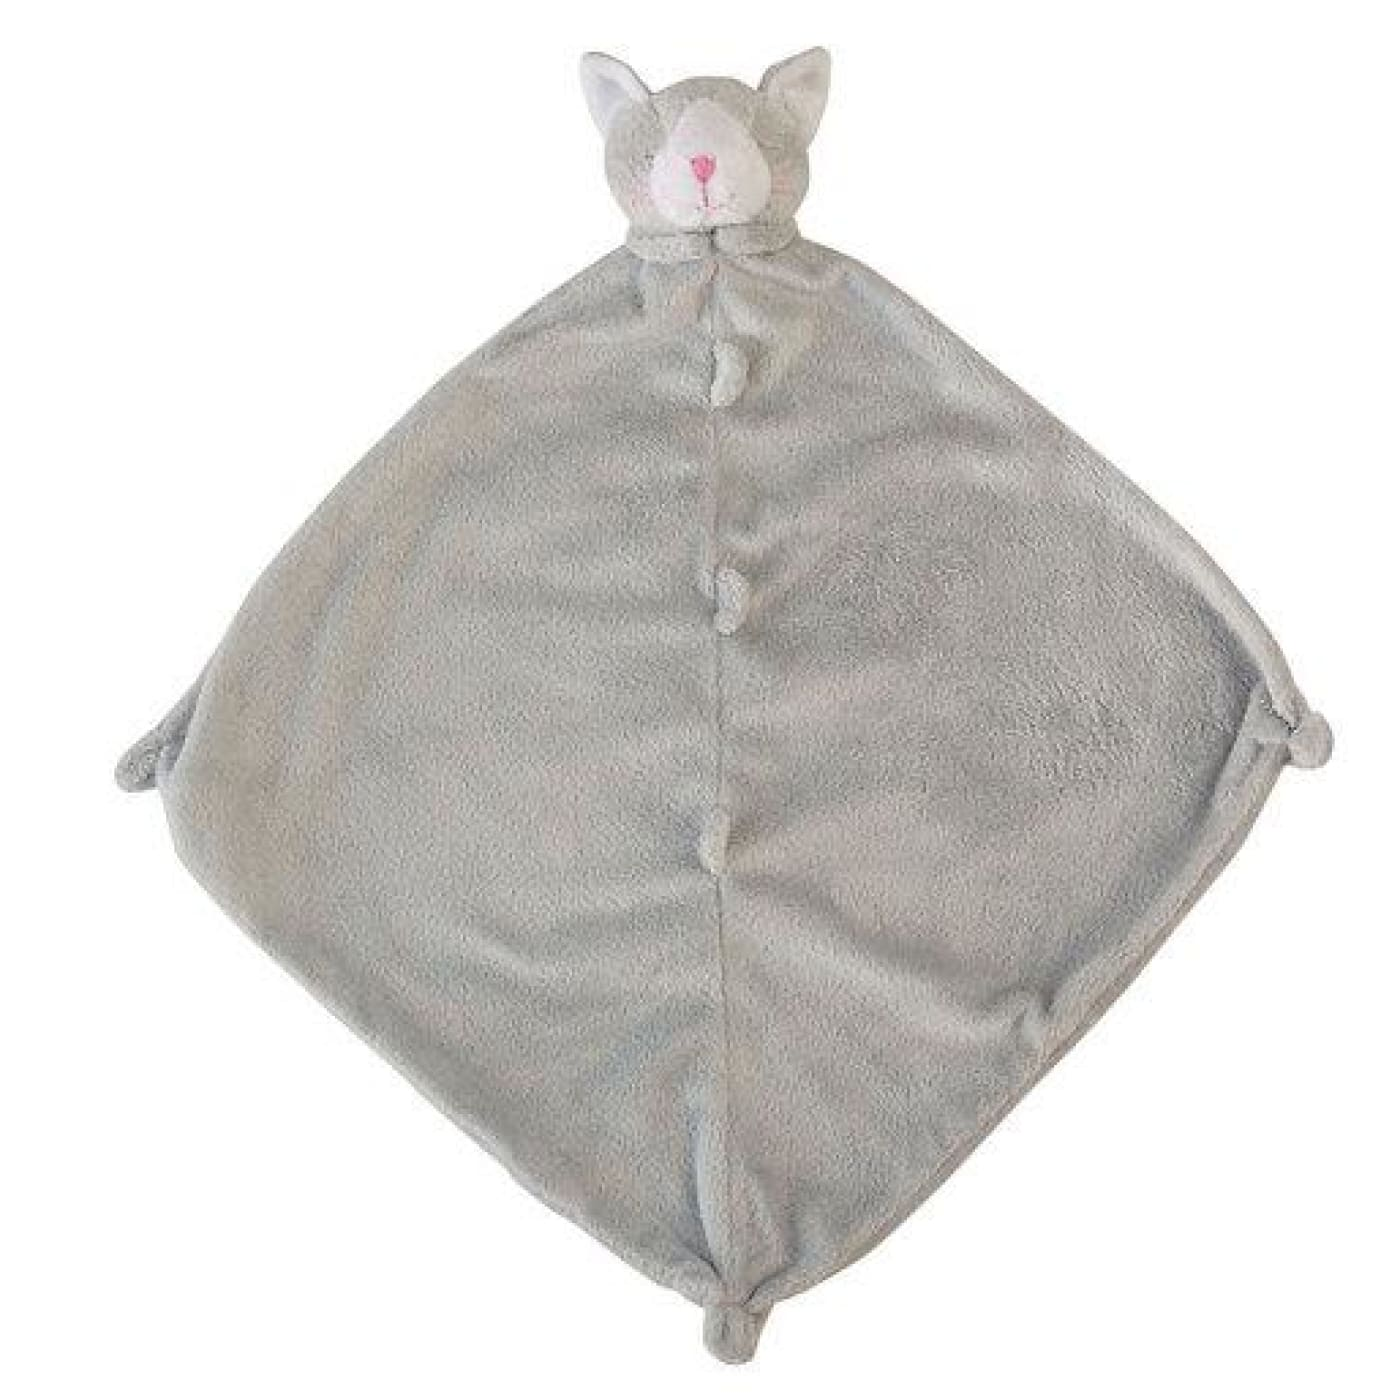 Angel Dear Blankie - Grey Kitty - TOYS & PLAY - BLANKIES/COMFORTERS/RATTLES